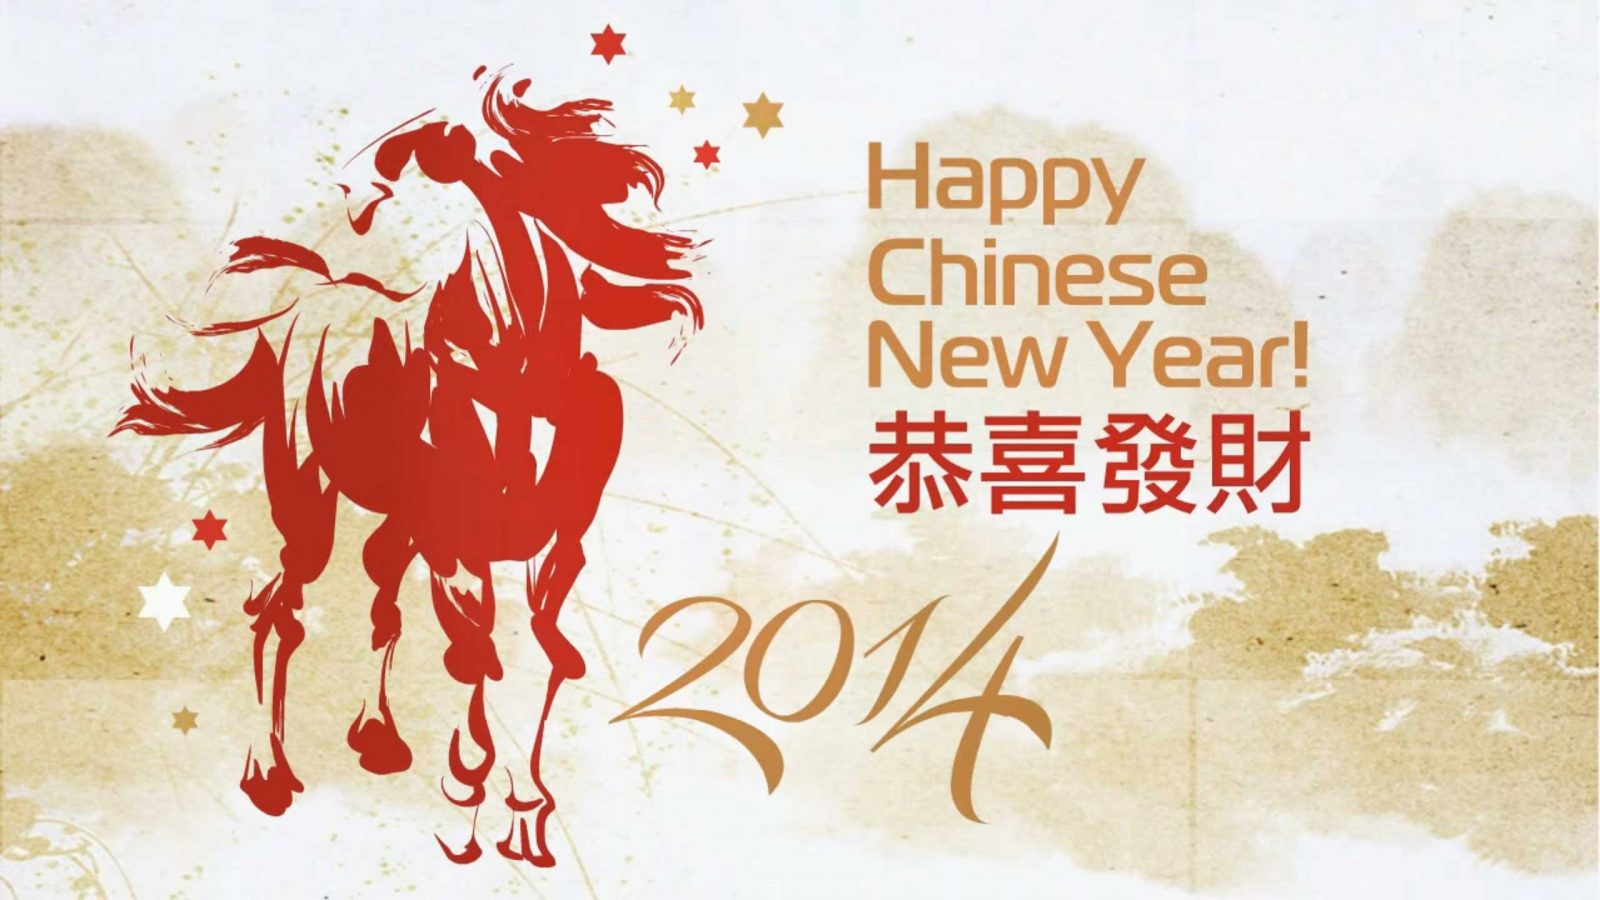 Web3D - מיתוג עסקי - happy Chinese new year - zim